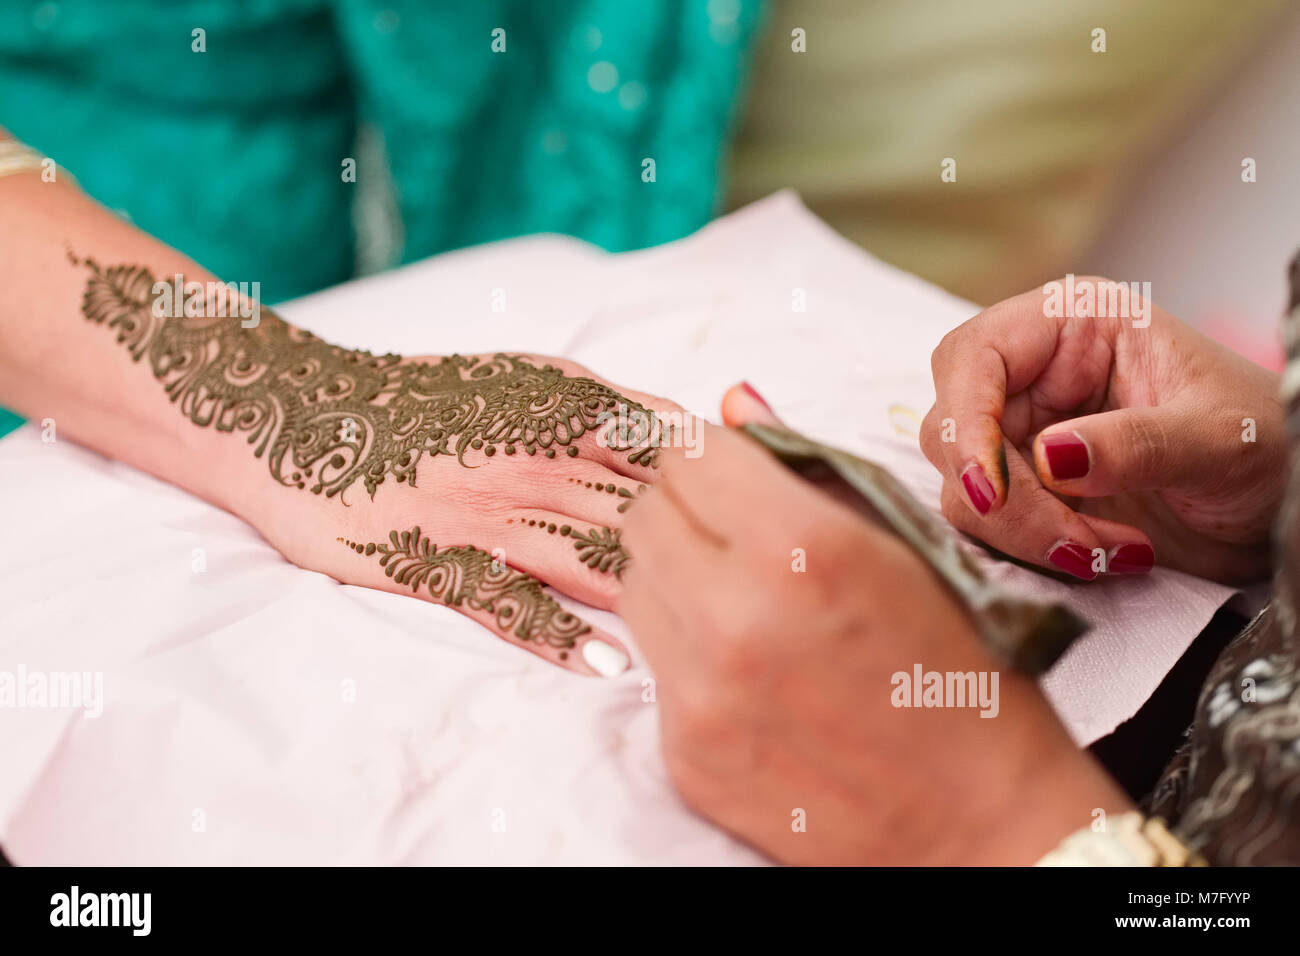 Mehndi Designs On Hand Of Bride For Indian Sikh Wedding Stock Photo